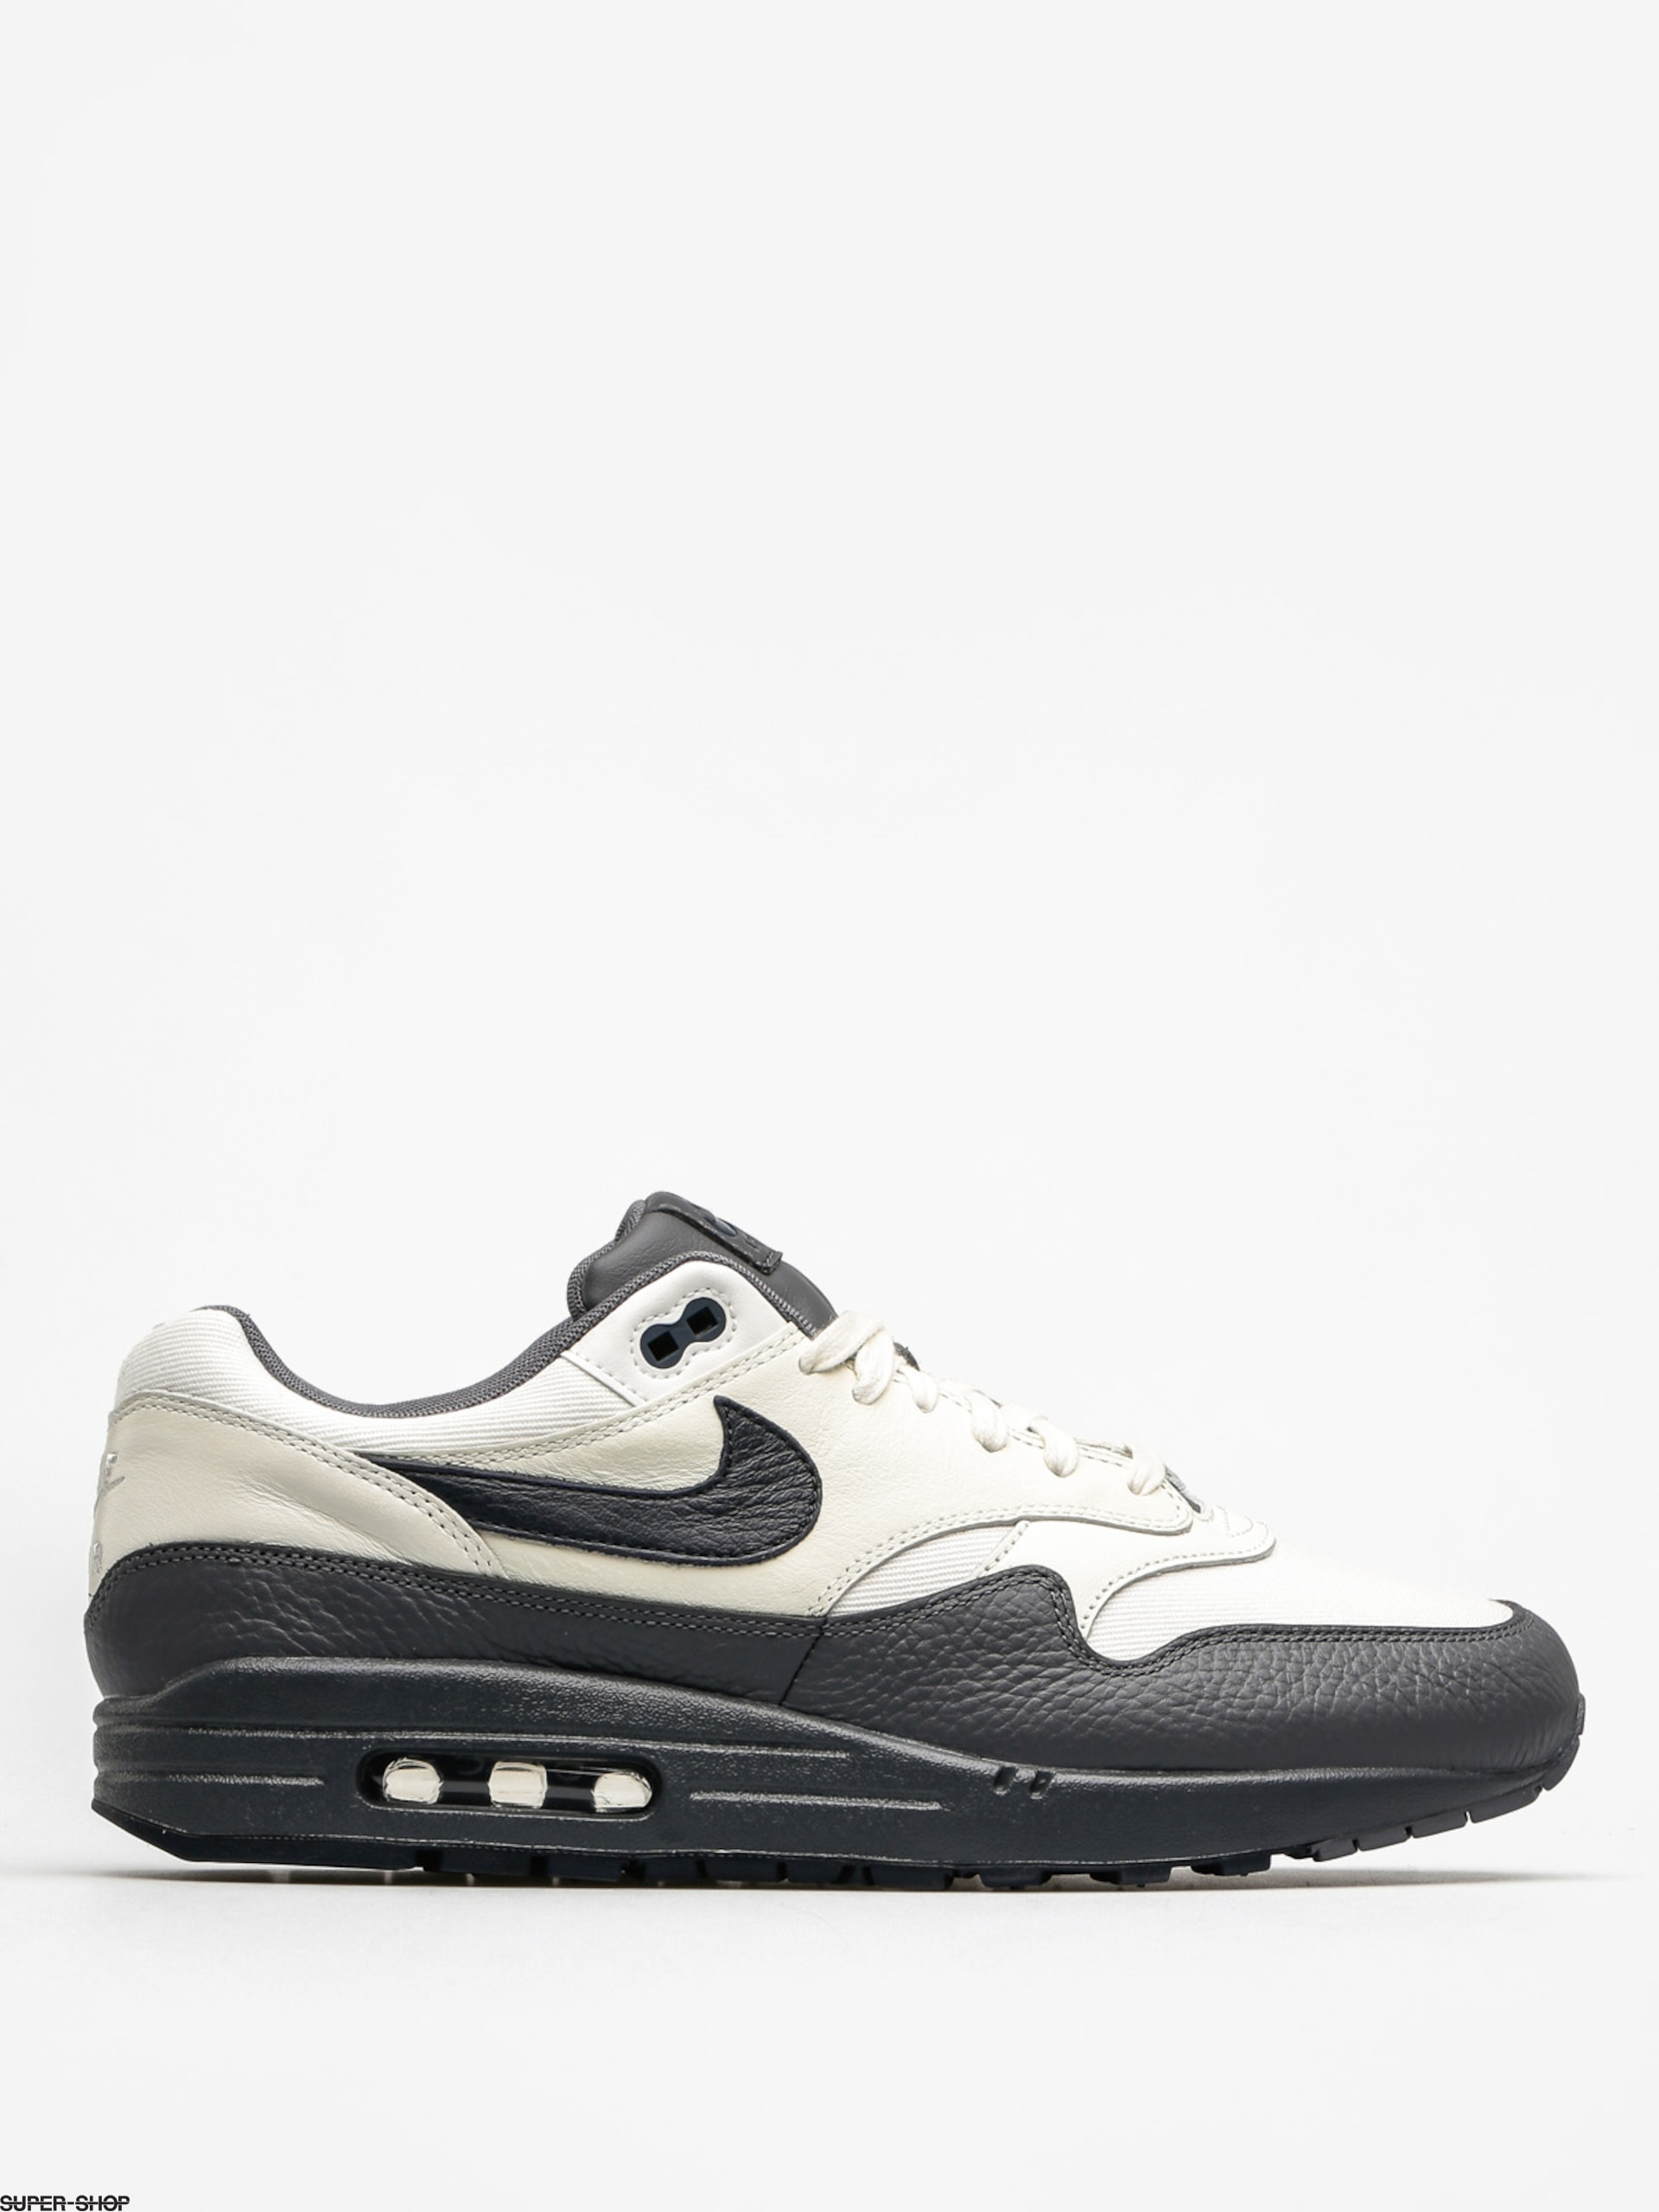 Nike Schuhe Air Max 1 (Premium sail/dark obsidian dark grey)